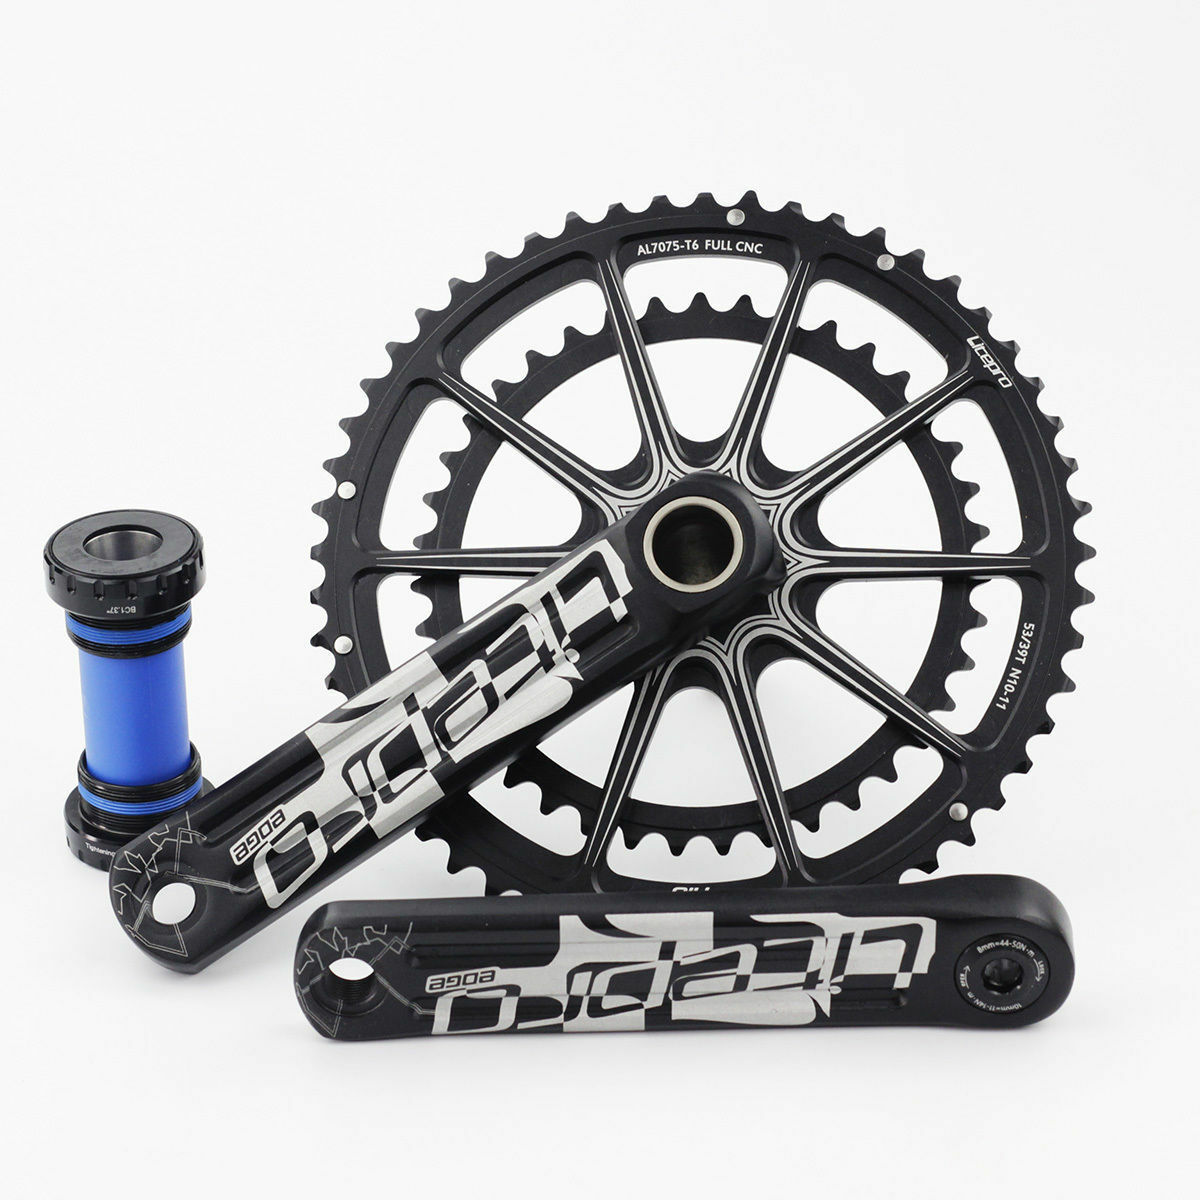 Litepro Folding Bike Hollow Double  Crankset Bicycle GXP BB Road Crankset 53 39T  clients first reputation first